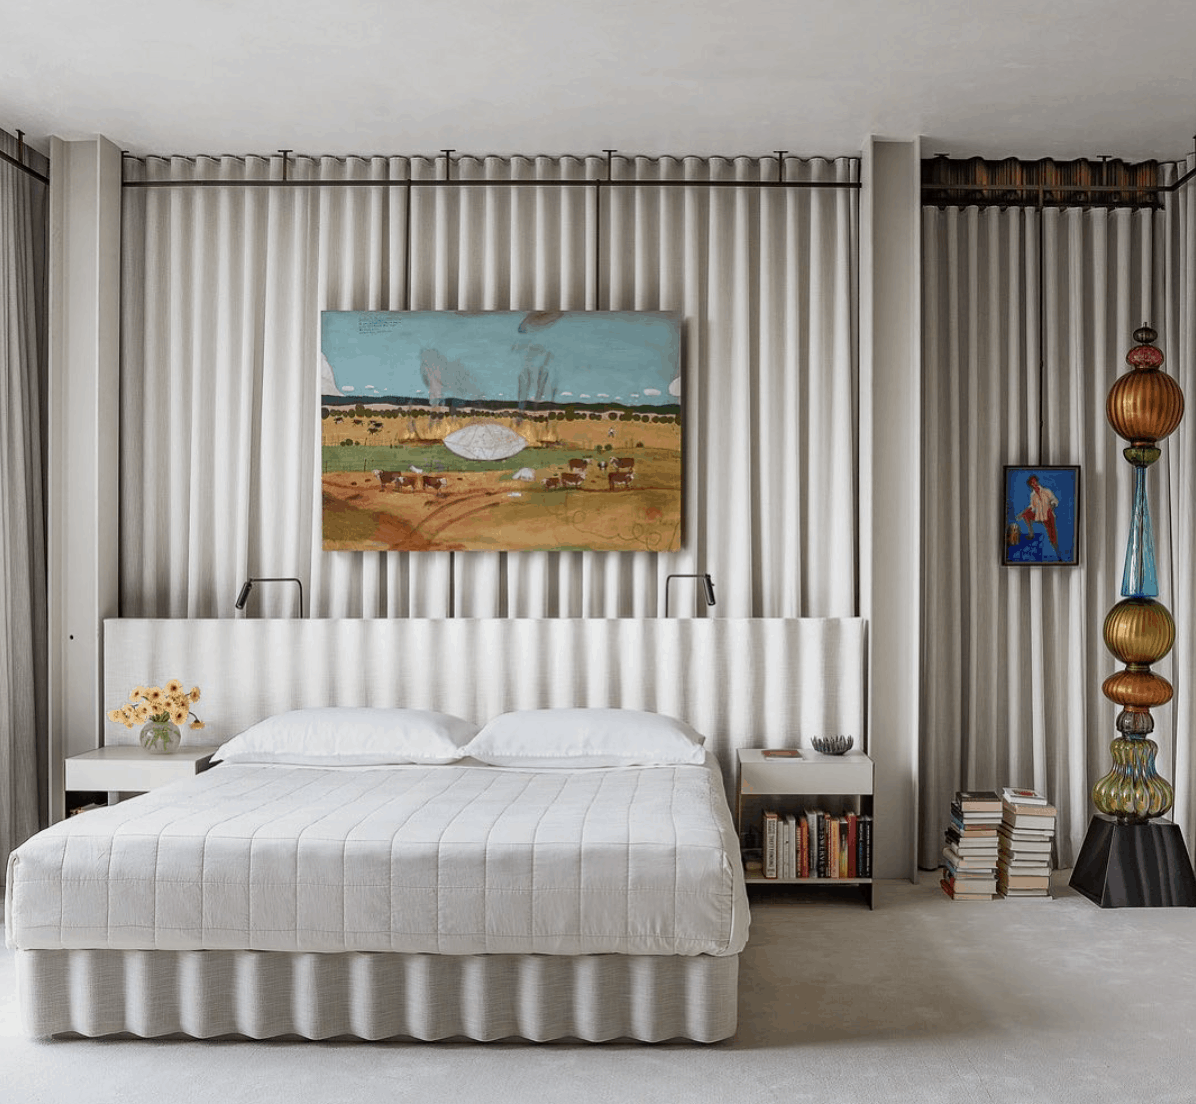 the 10 decor trends of 2021 that we